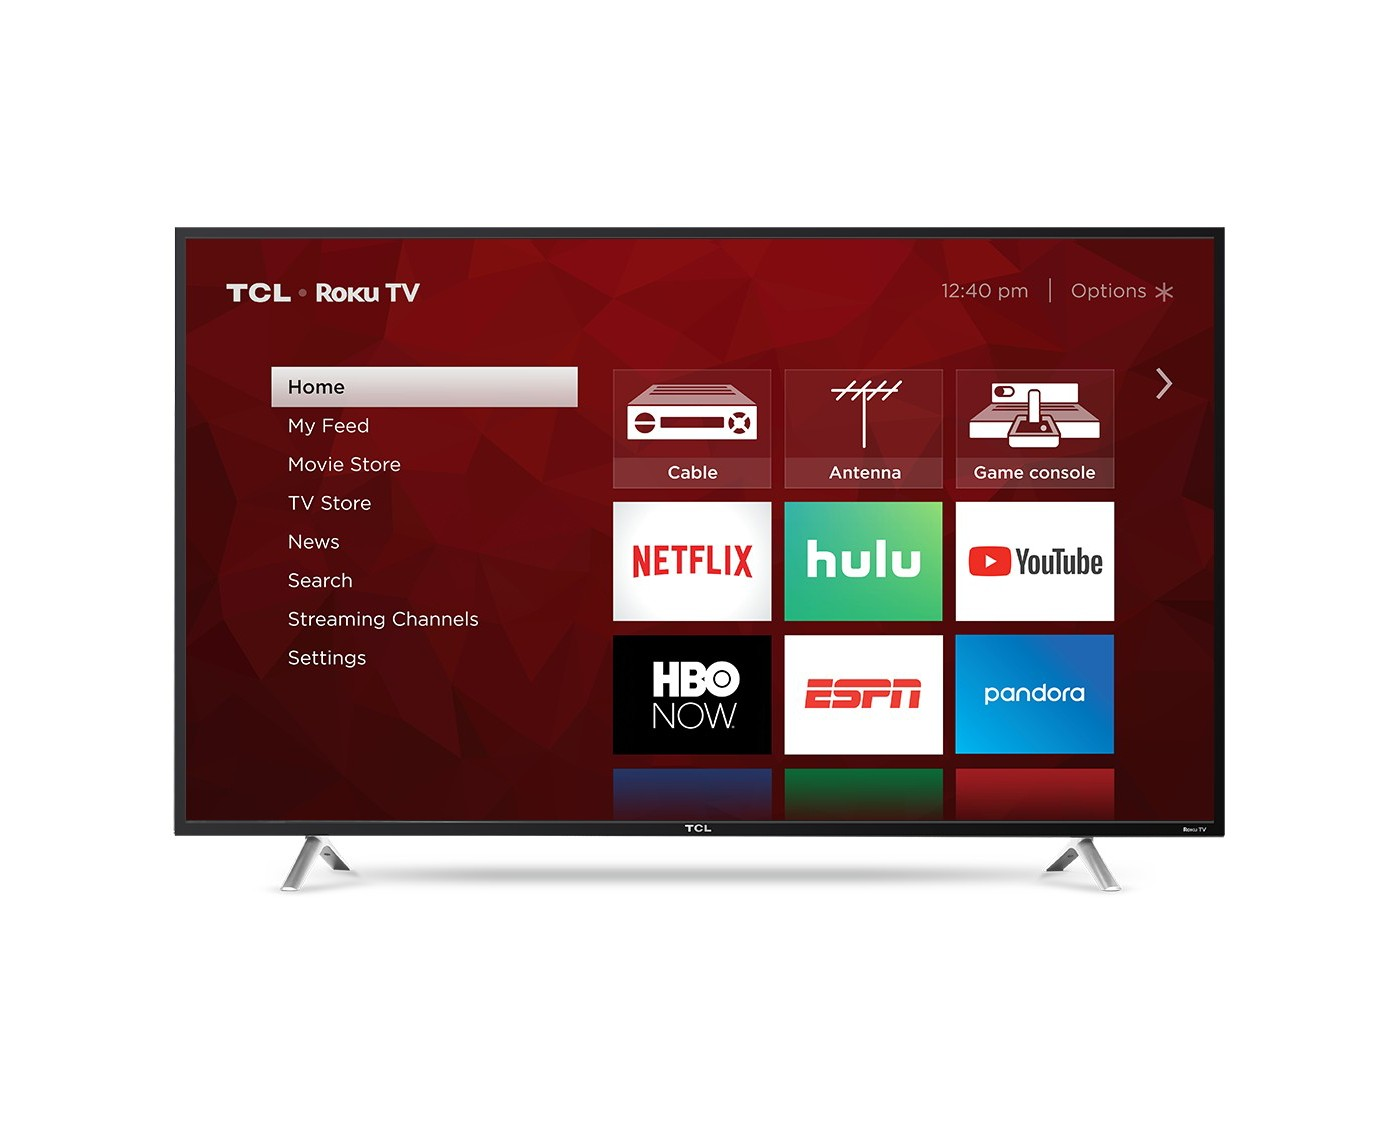 "TCL 55"" 4K HDR 120Hz CMI Roku Smart LED TV - Black (55S405) - image 2 of 14"